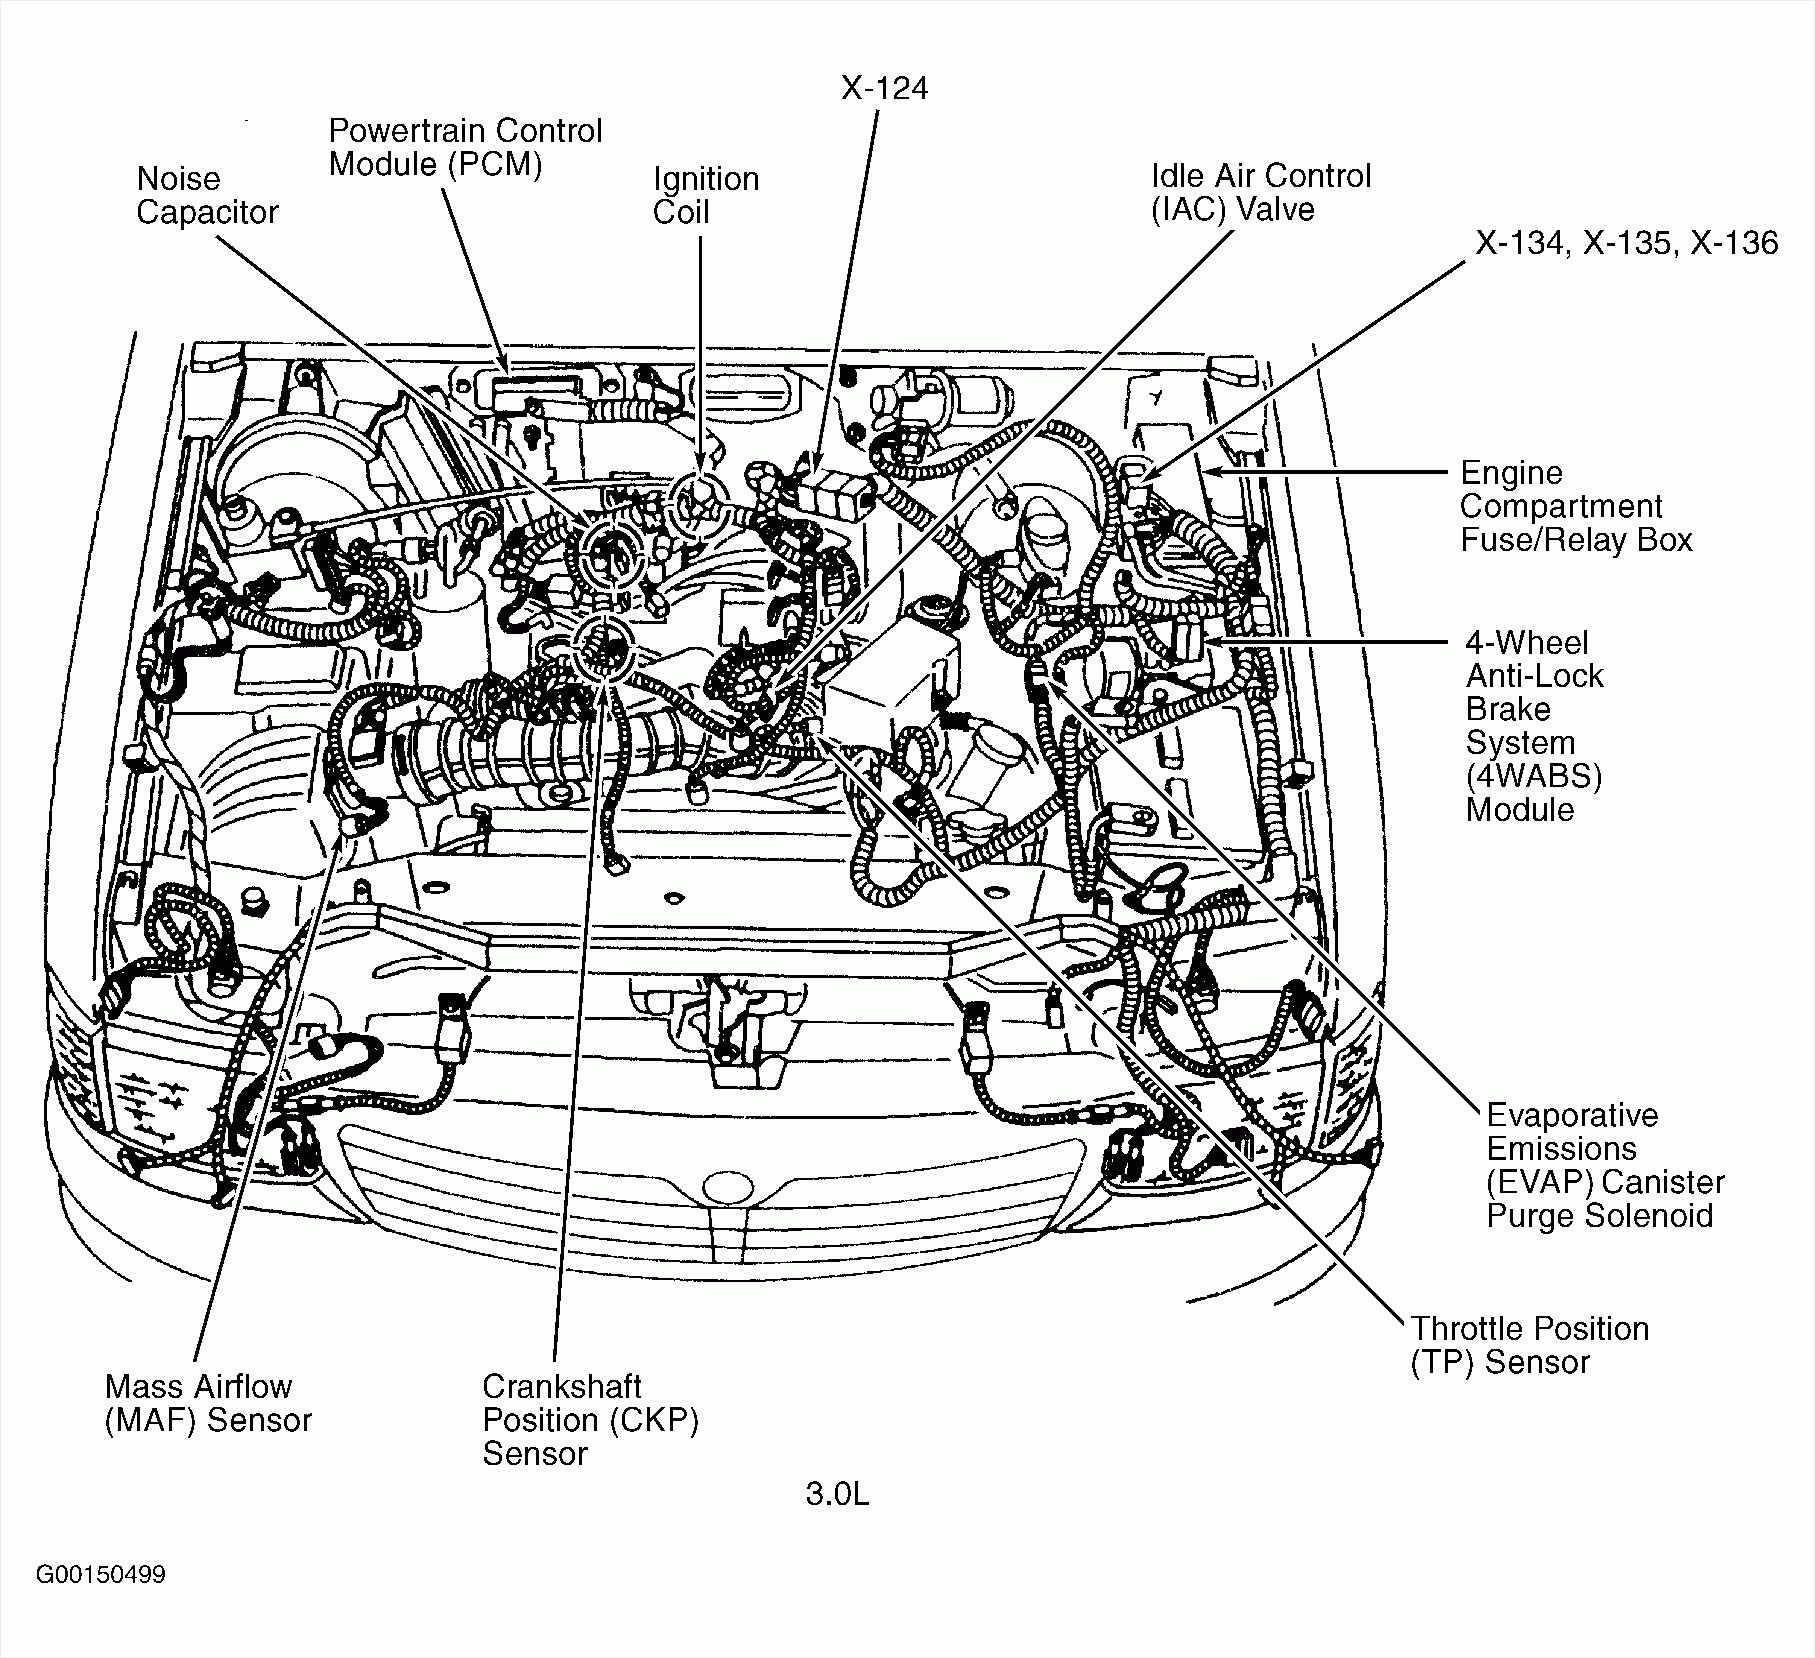 hight resolution of 1998 ford windstar engine diagram wiring diagram forward 1999 ford windstar parts diagram